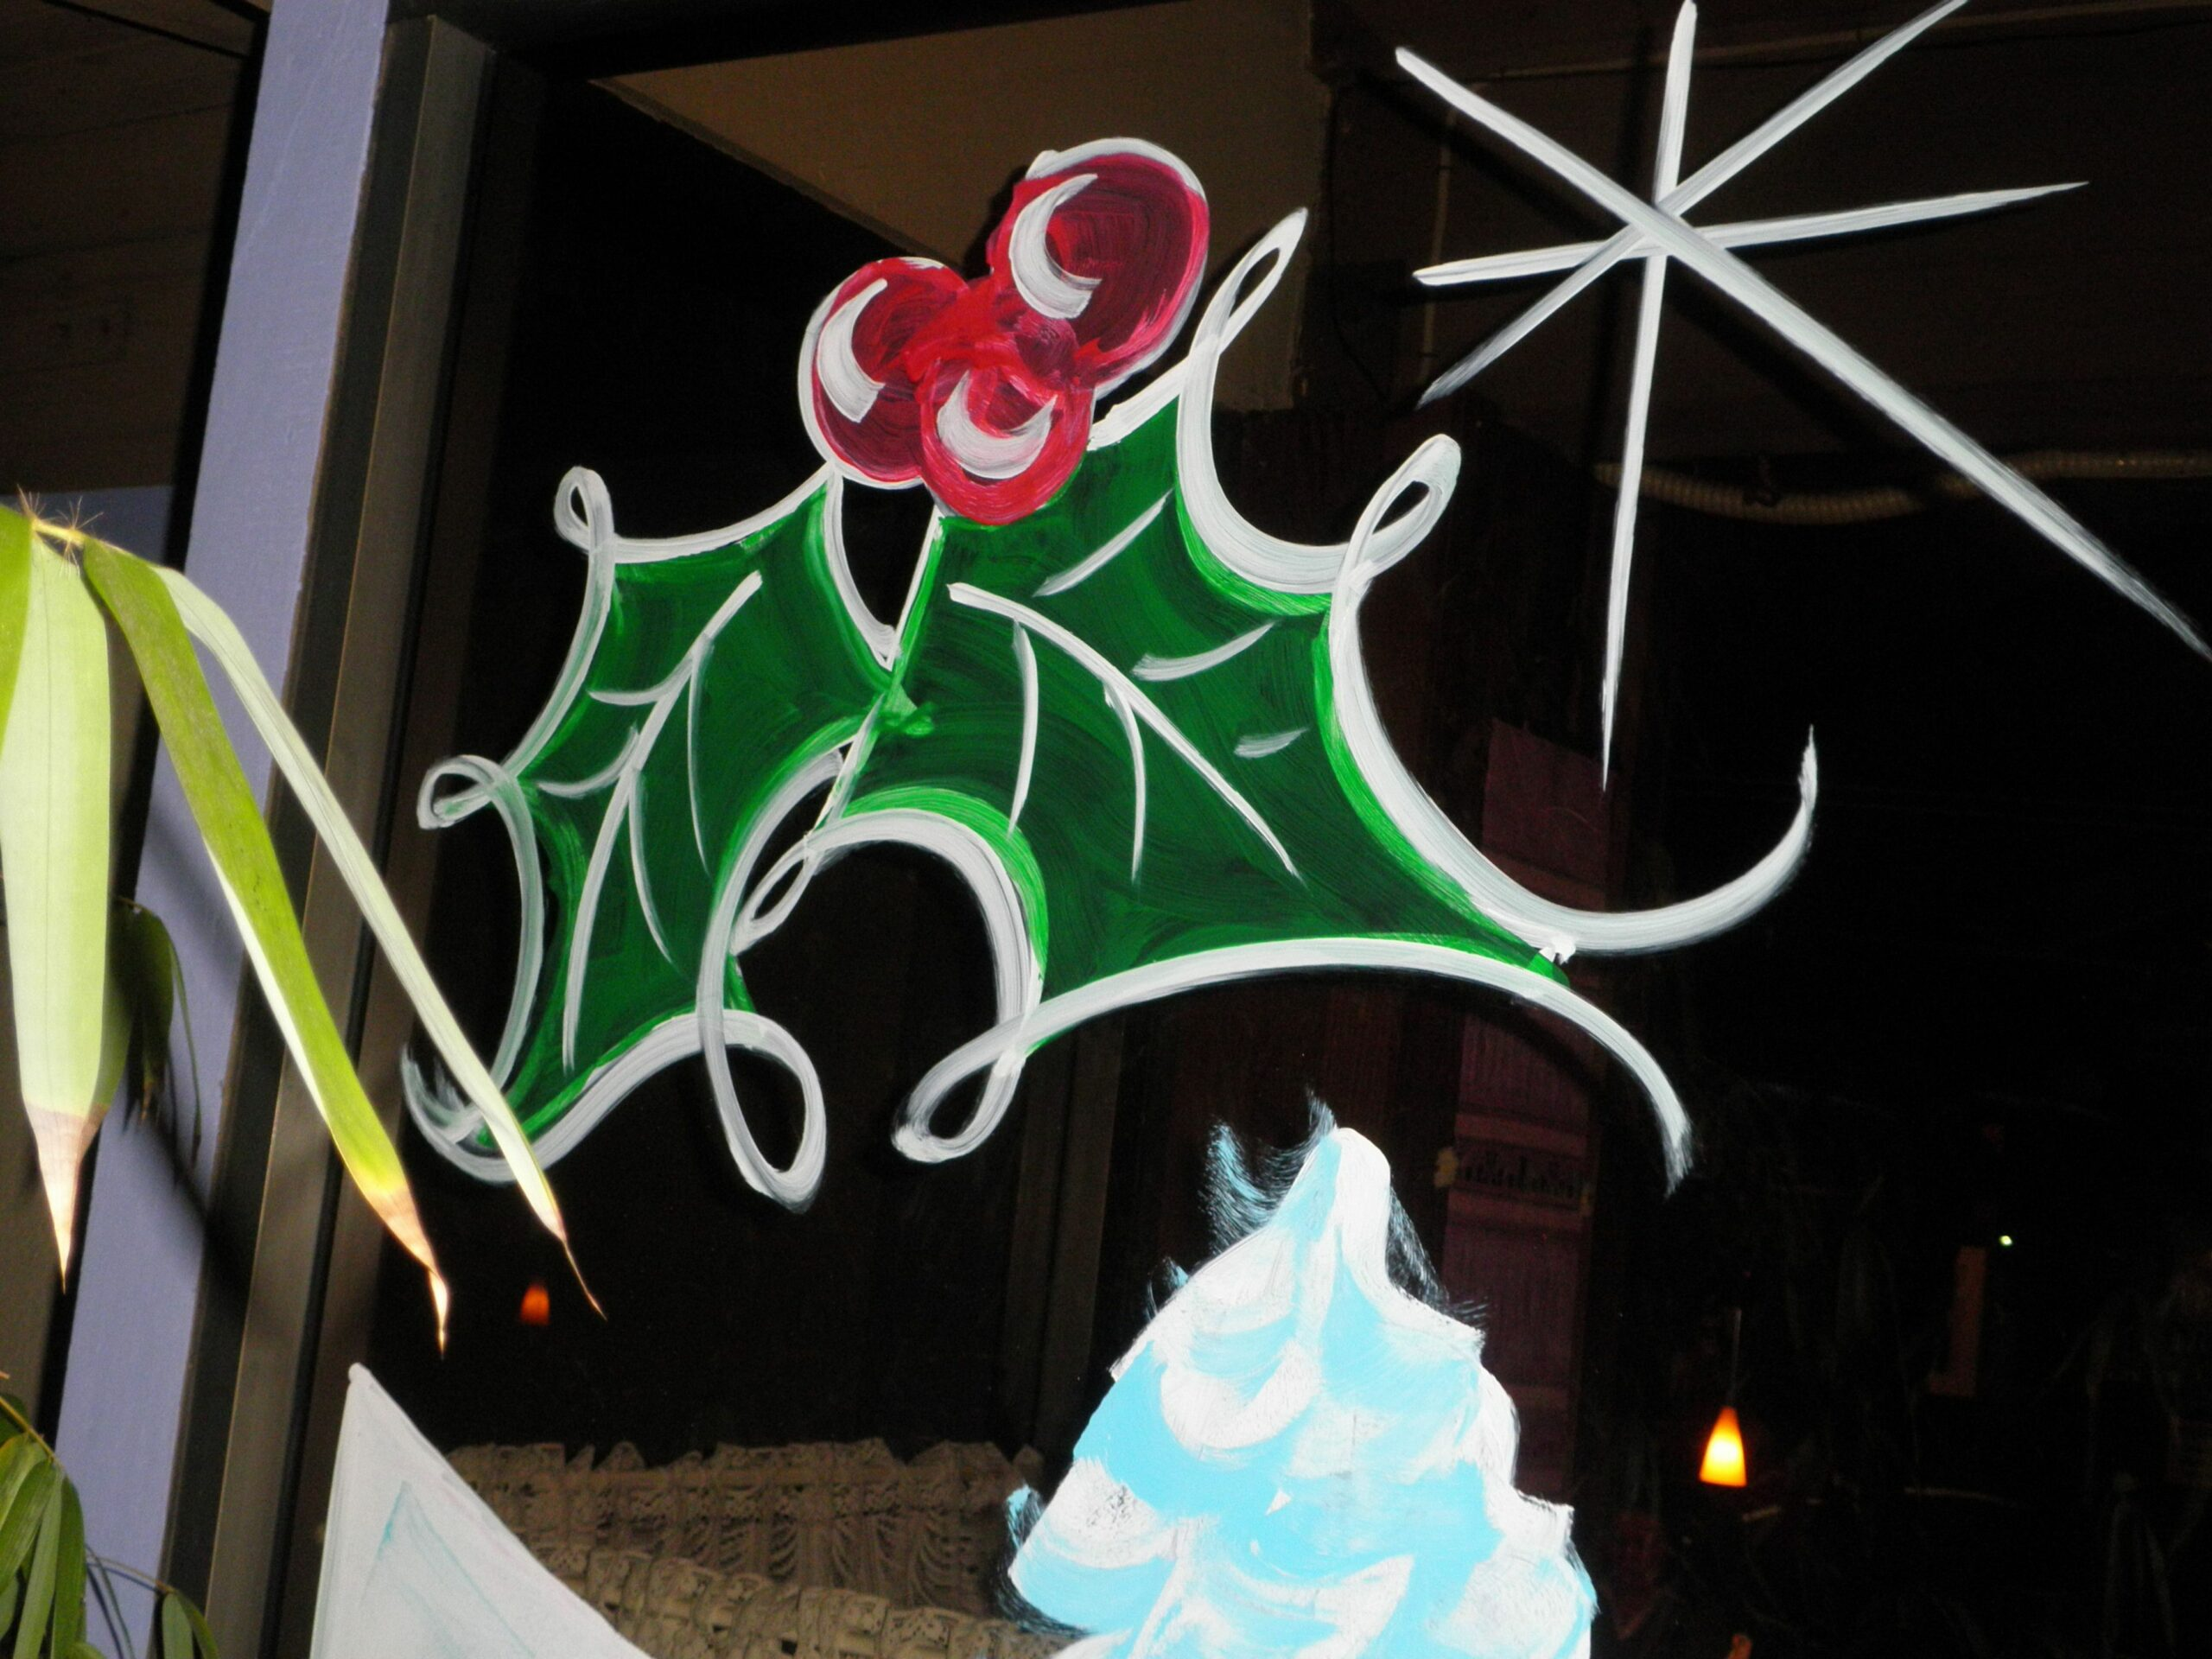 Christmas window painting art | Christmas window painting, Window ..